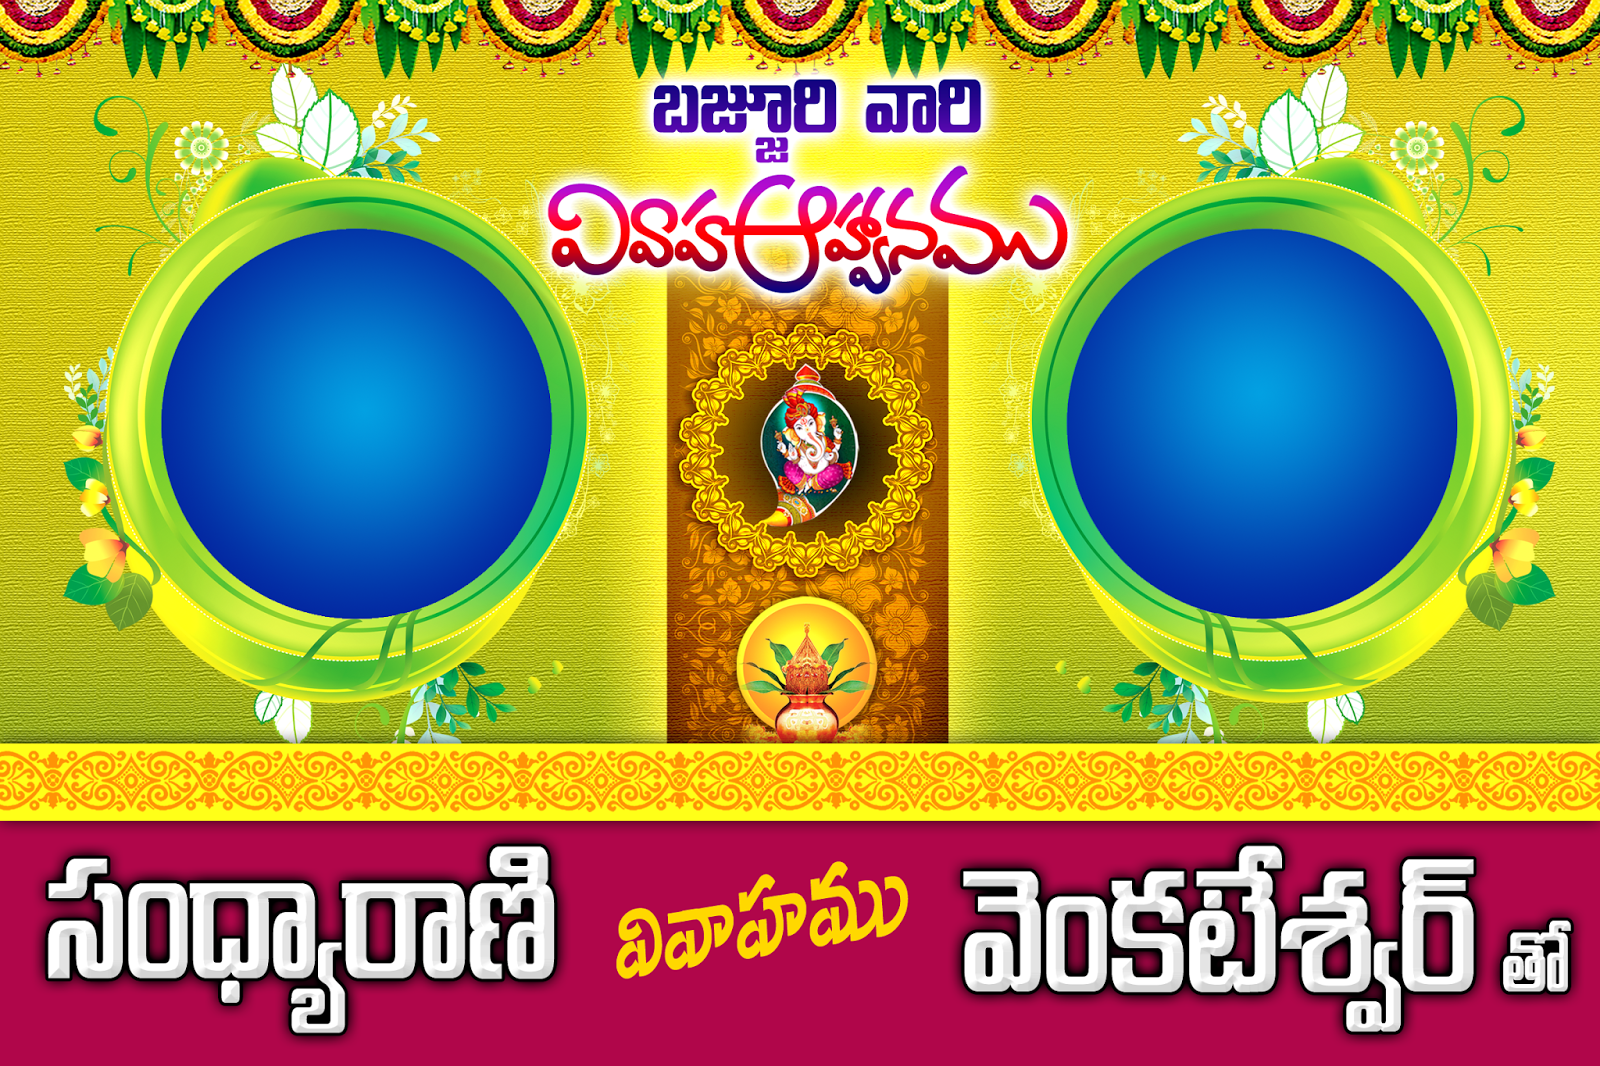 Wedding Flex Banners Design Psd Template Free Abhaya Ads Flex Printing